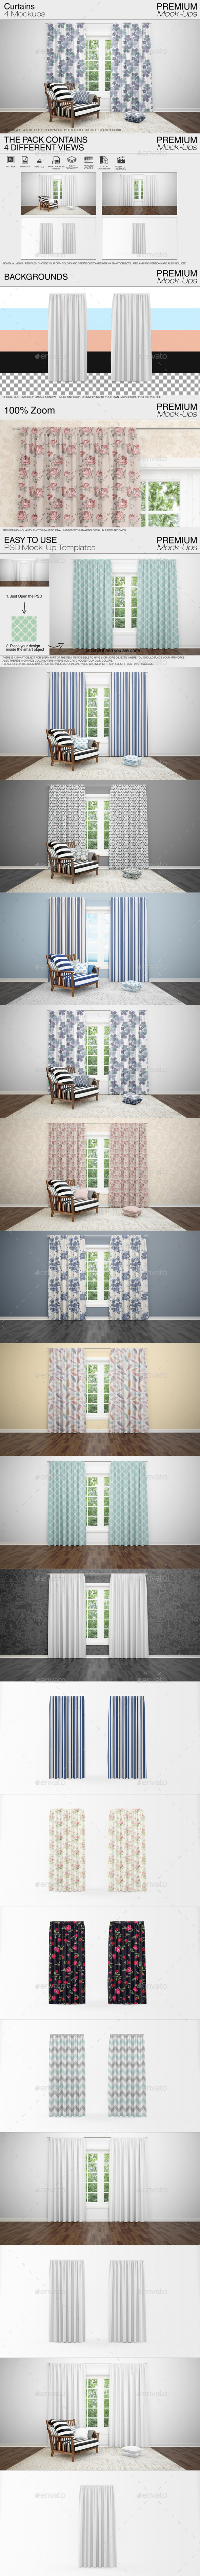 Curtains Mockup Pack - Print Product Mock-Ups